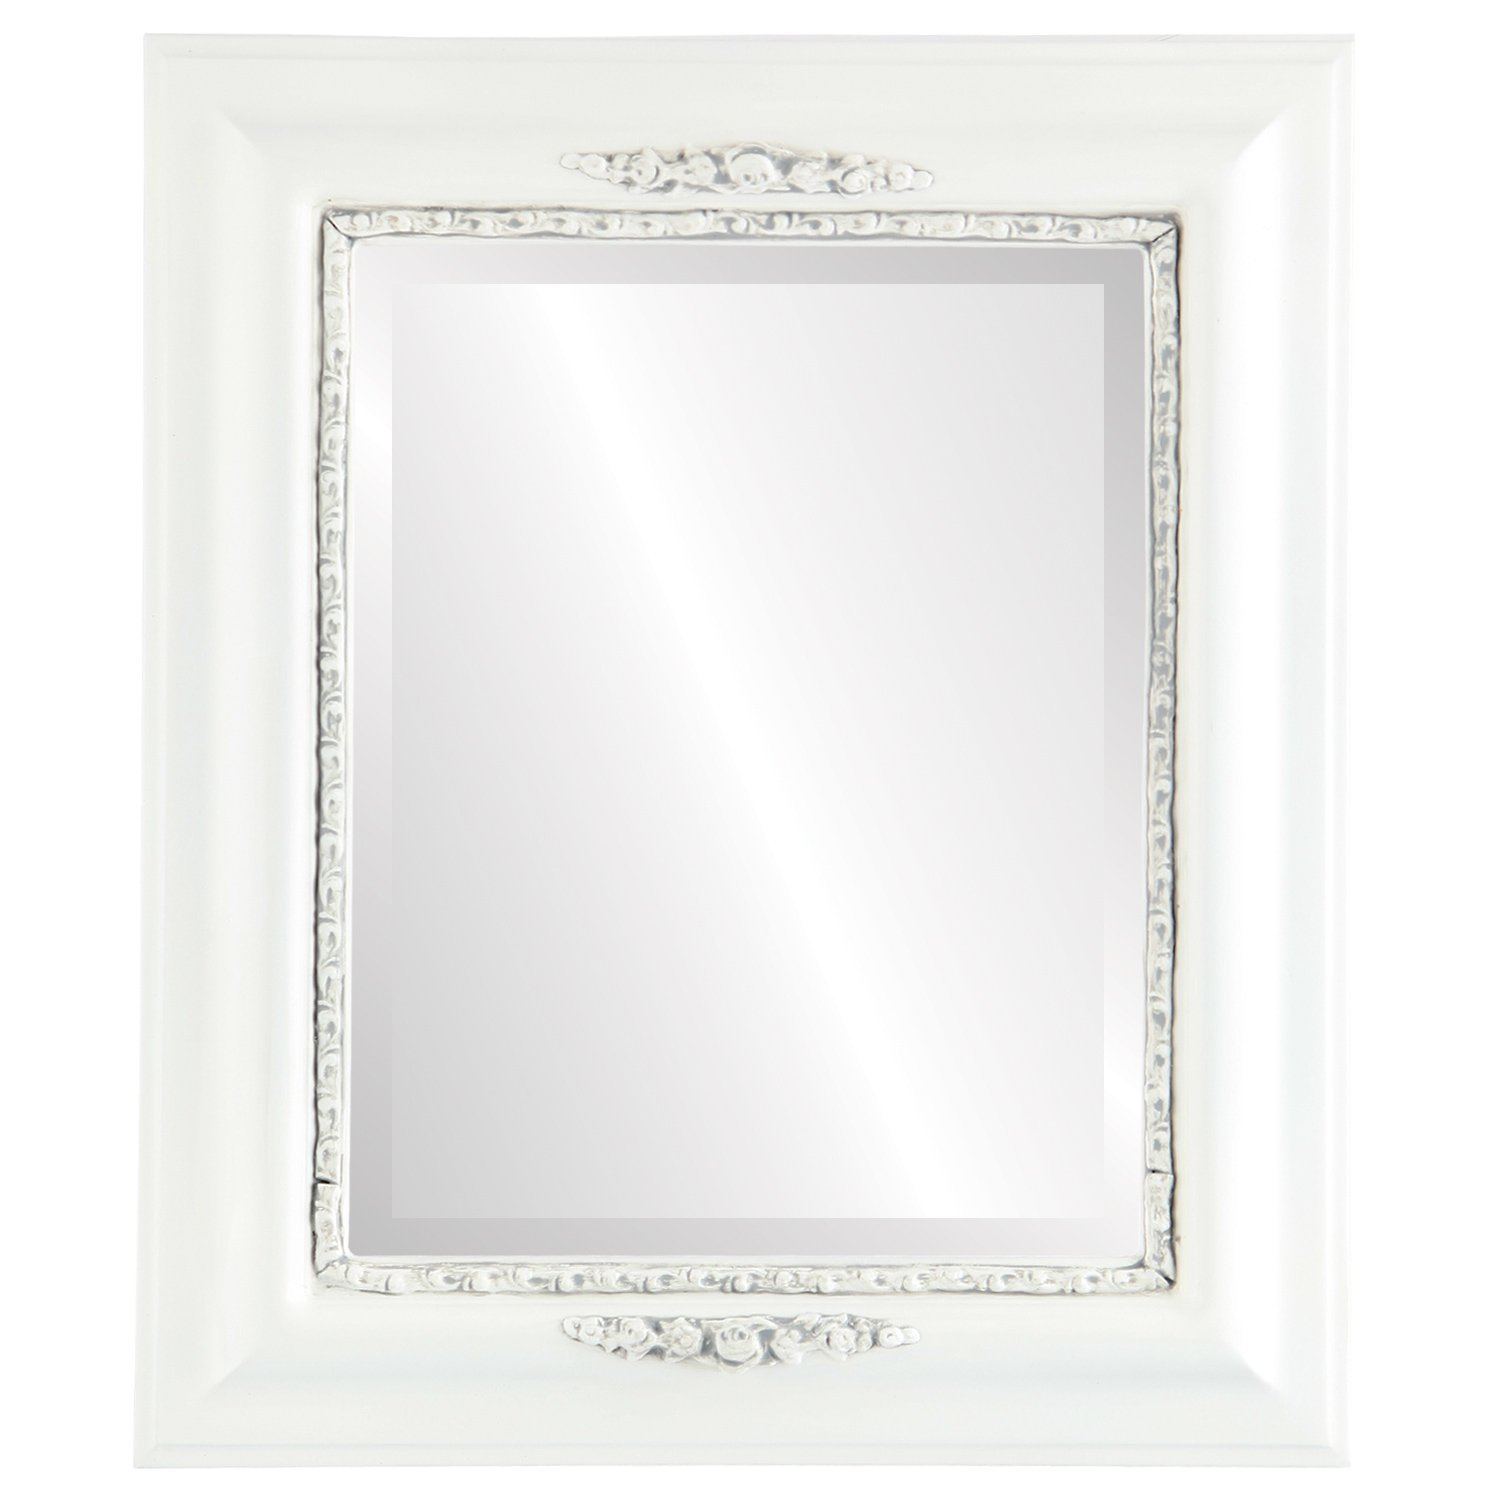 Cheap 25 X 35 Frame, find 25 X 35 Frame deals on line at Alibaba.com